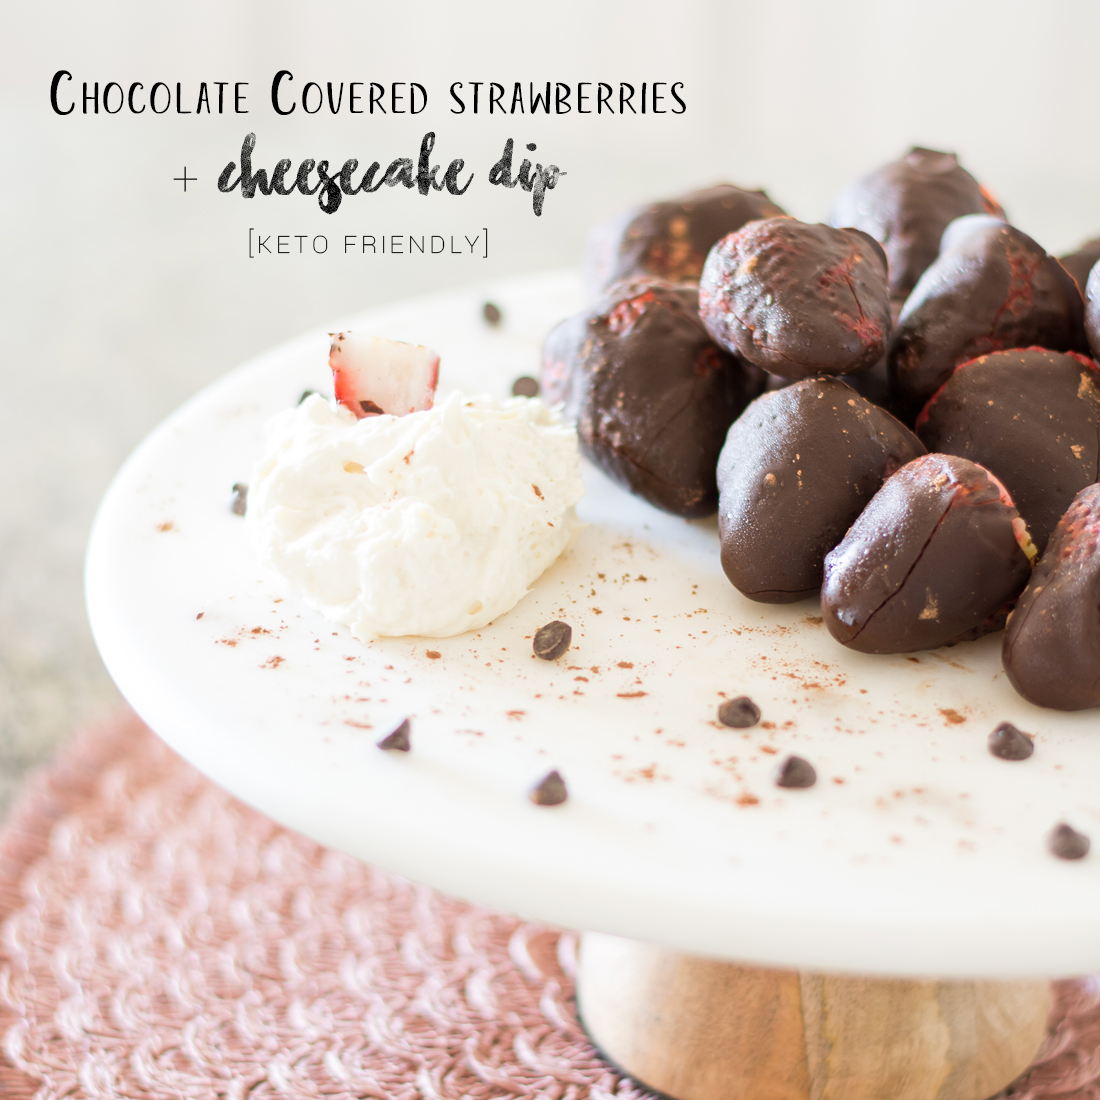 Keto Chocolate Covered Strawberries + Cheesecake Dip, Sugar Free, Low Carb Desserts